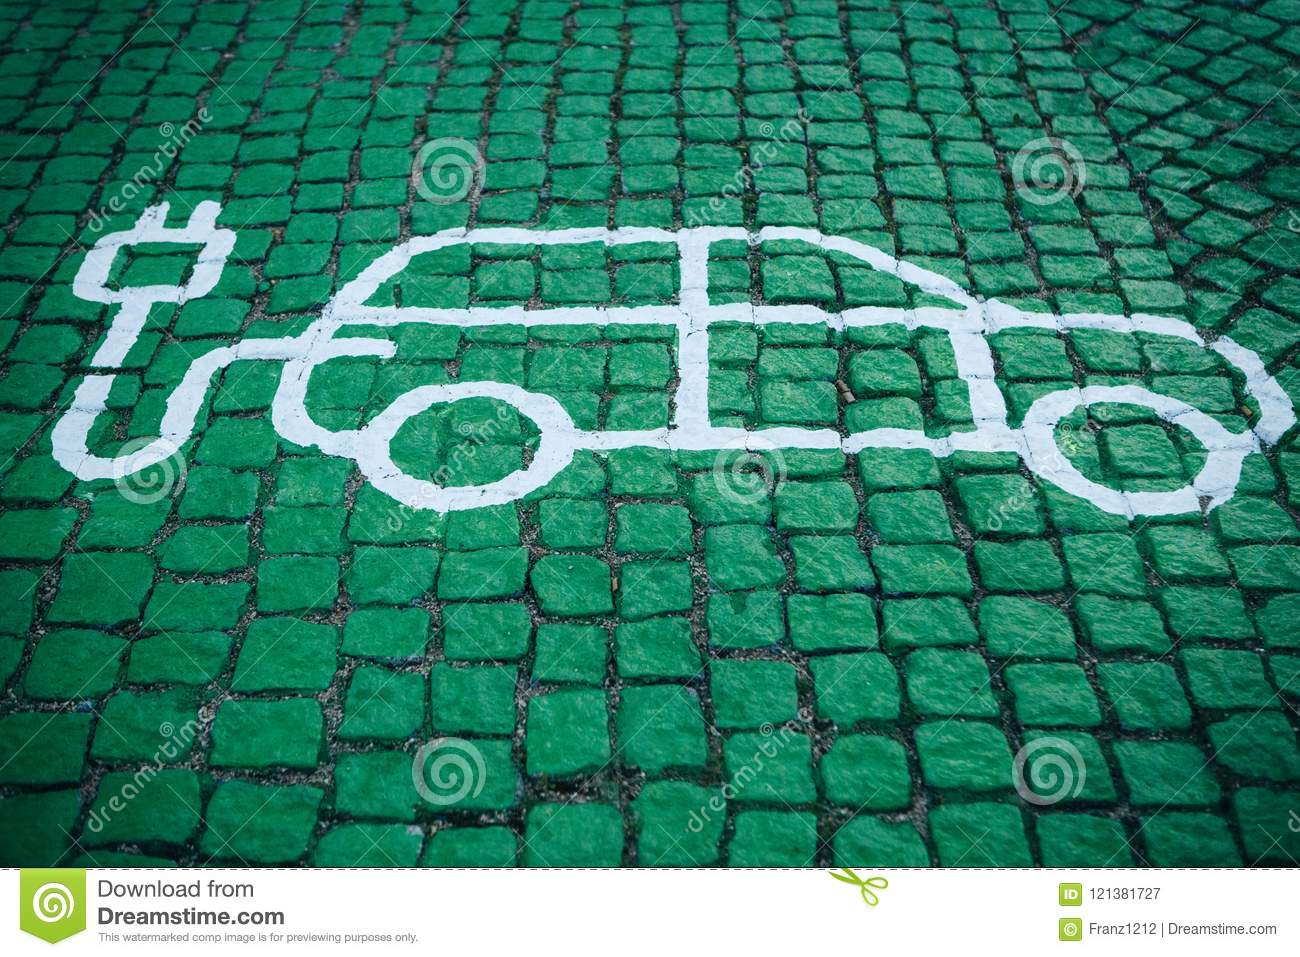 A special place for charging electric cars or vehicles. A modern and eco-friendly mode of transport that has become